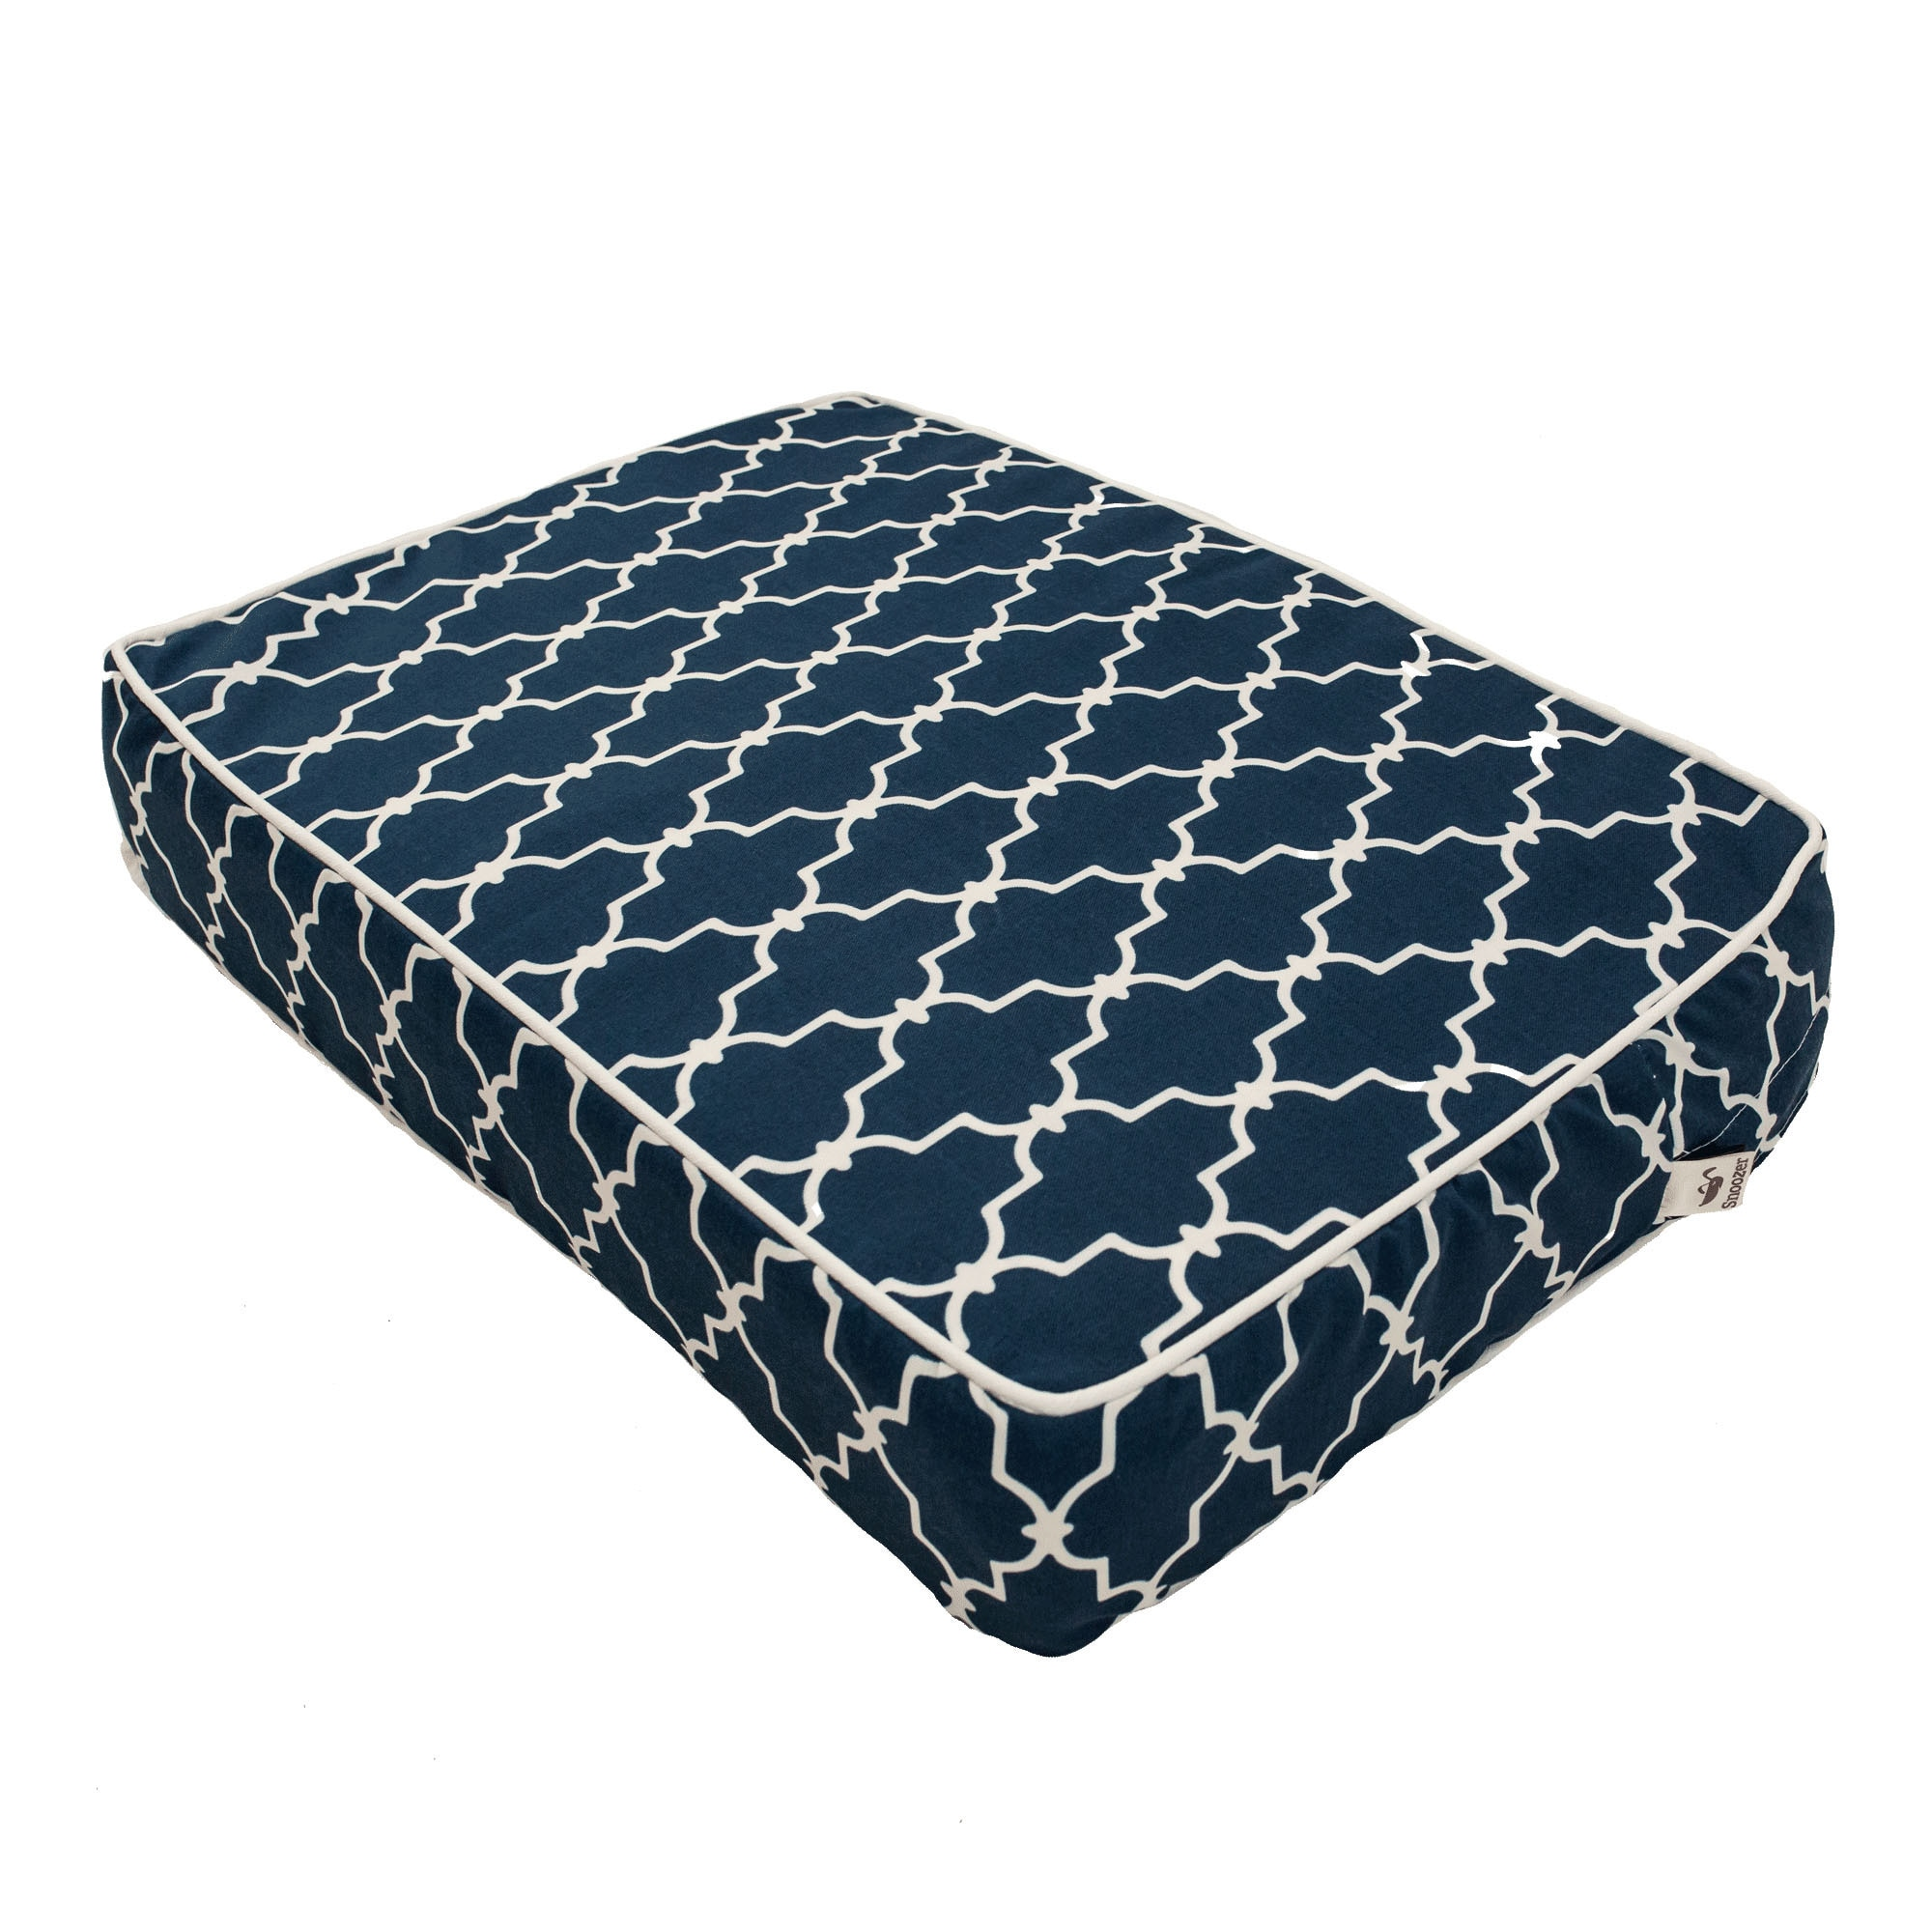 Snoozer Outlast Golden Gate Heating/Cooling Dog Bed - Wag...